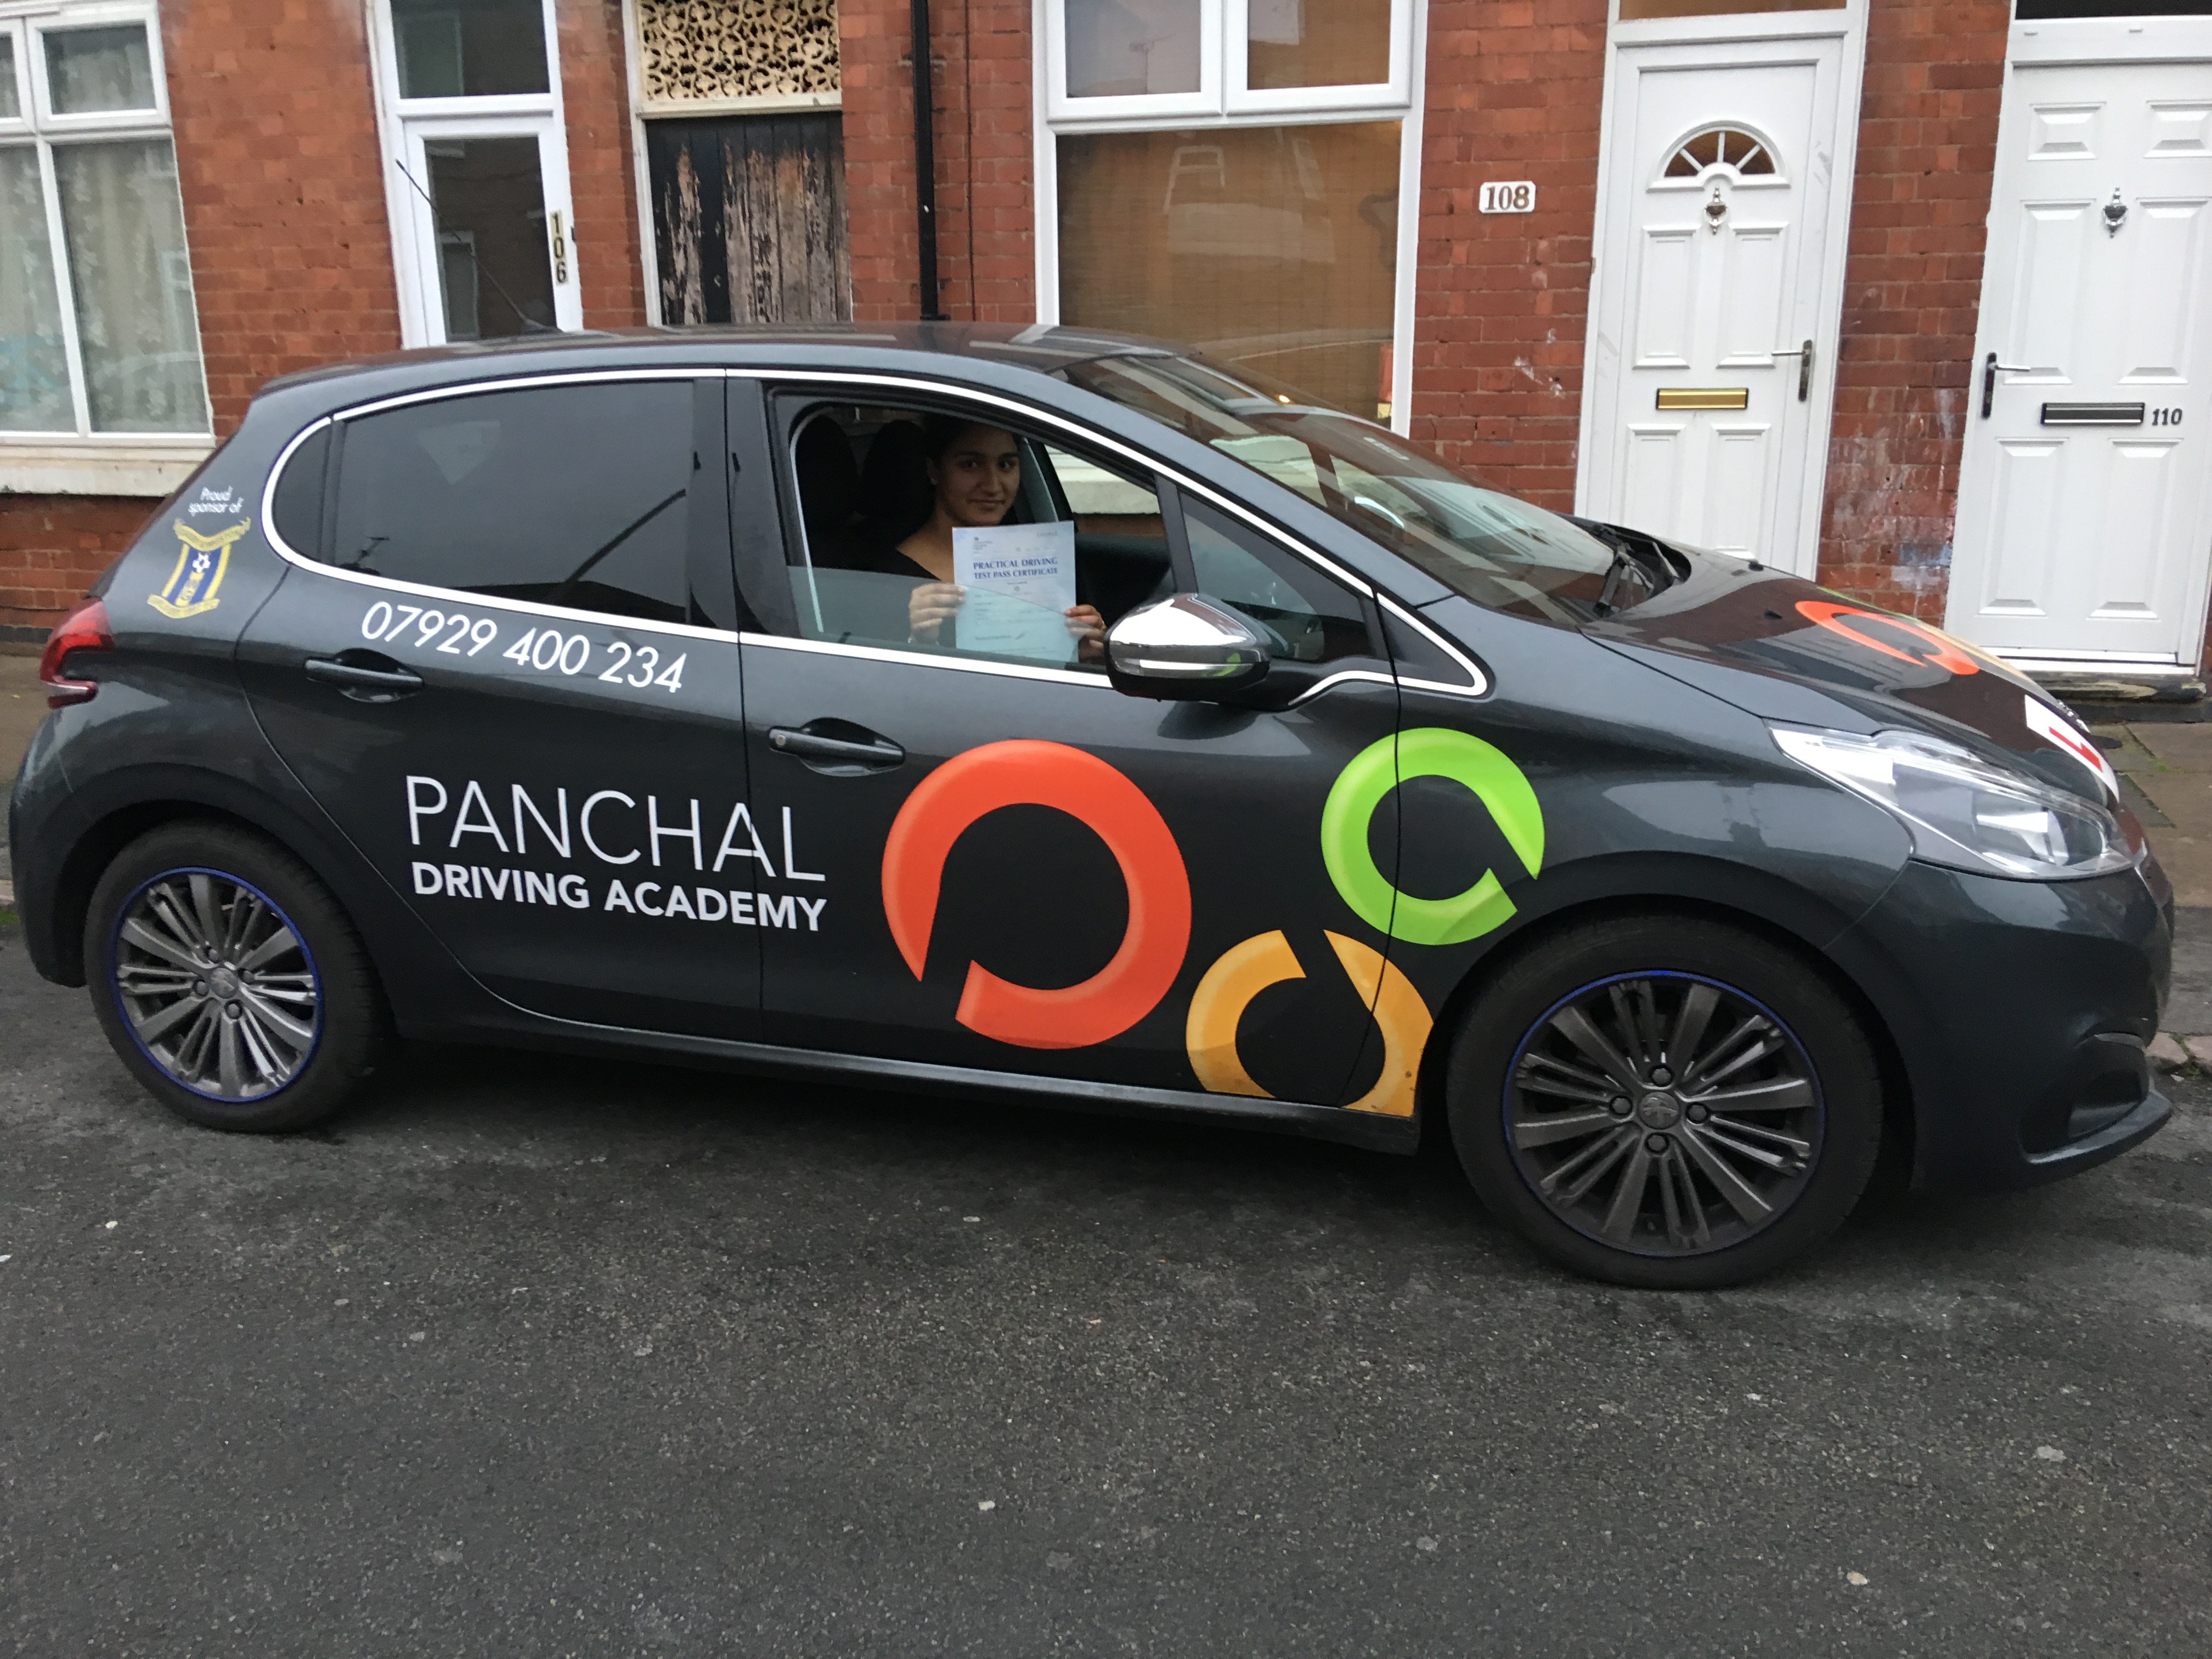 Driving Lessons Leicester - Panchal Driving Academy - Imaani